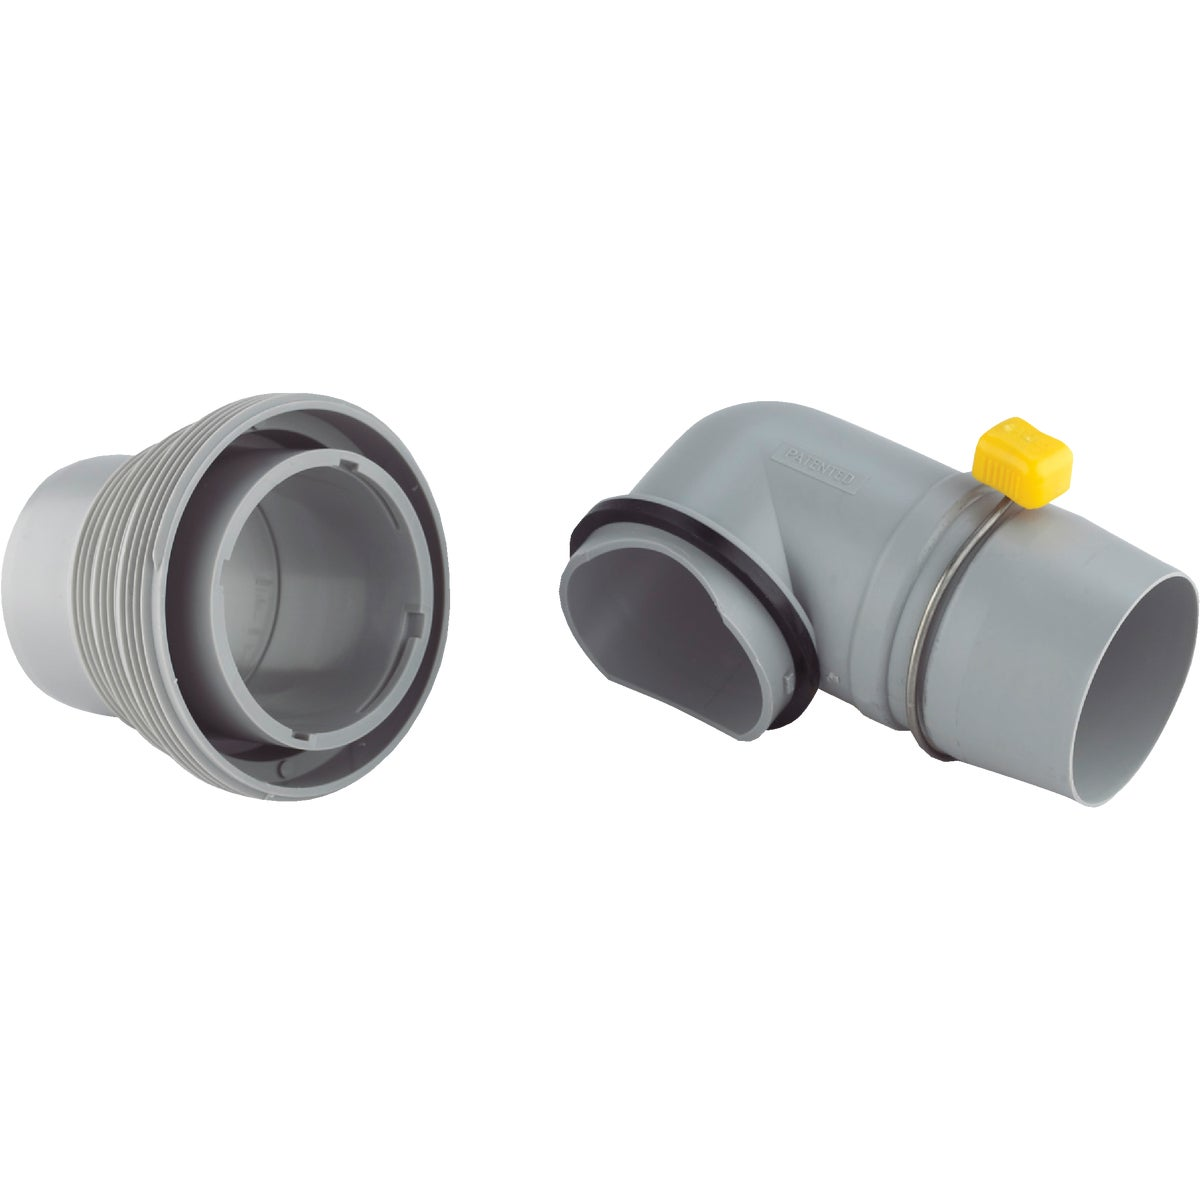 4N1 ELBOW SEWER ADAPTER - 39144 by Camco Mfg.